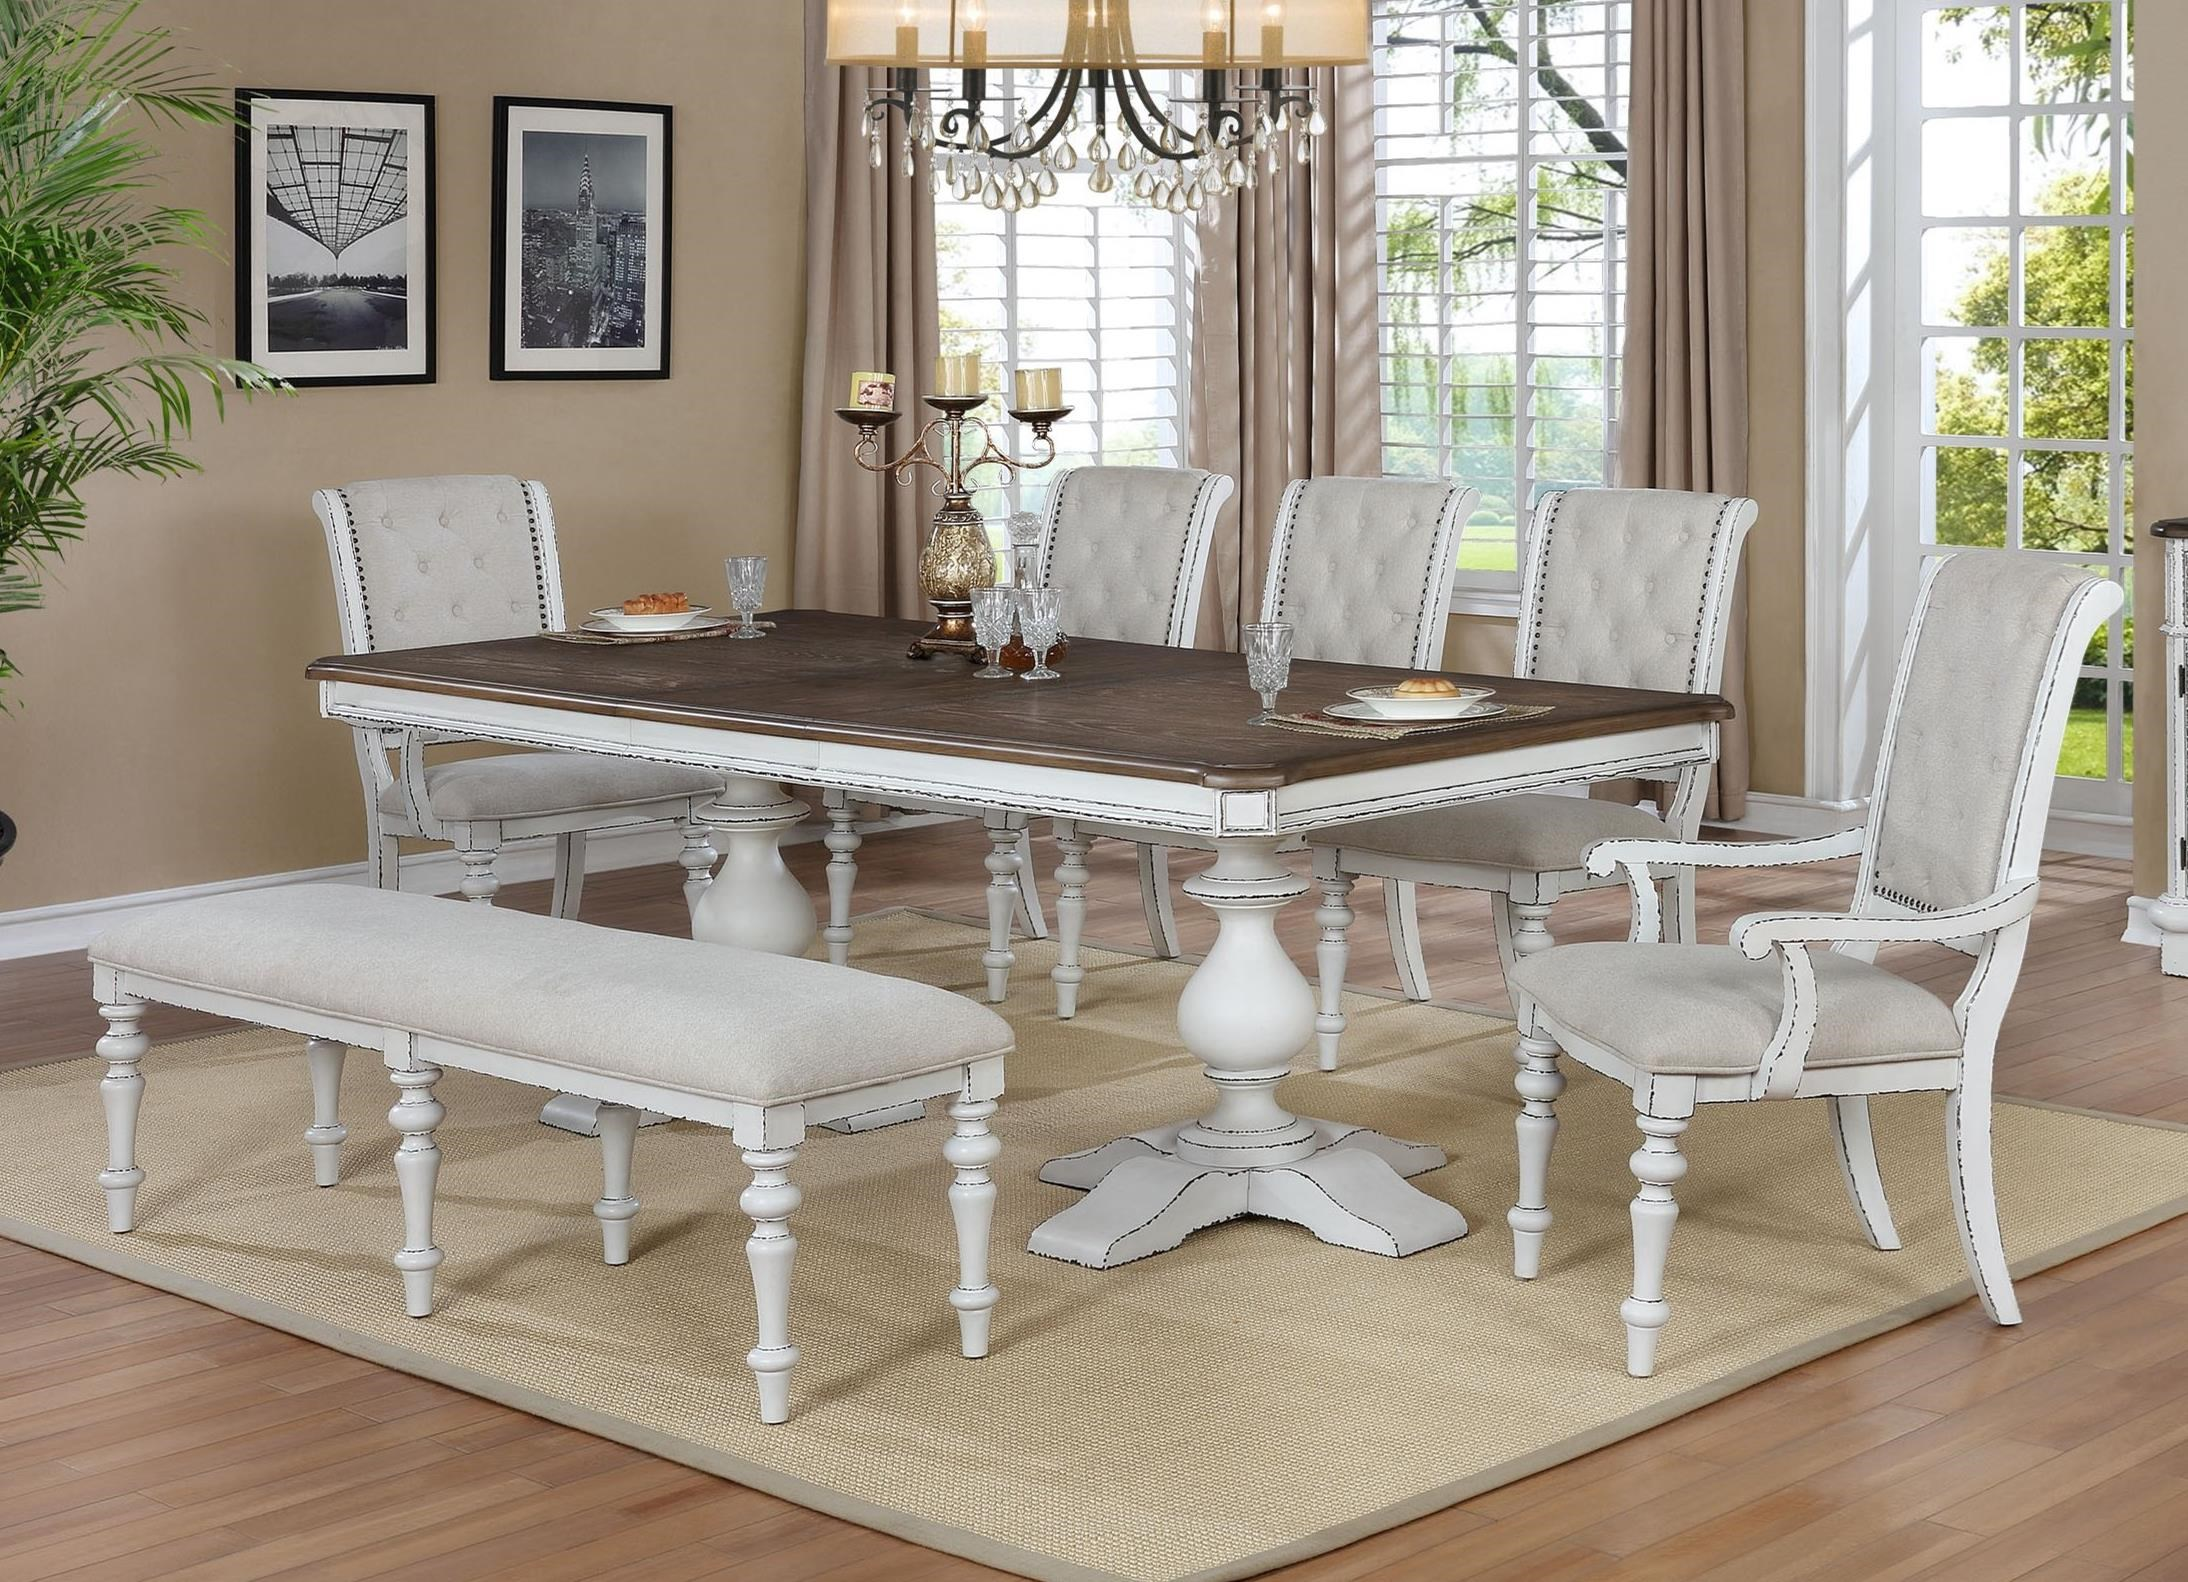 Bardot 7 Piece Dining Set with Bench by Crown Mark at Northeast Factory Direct